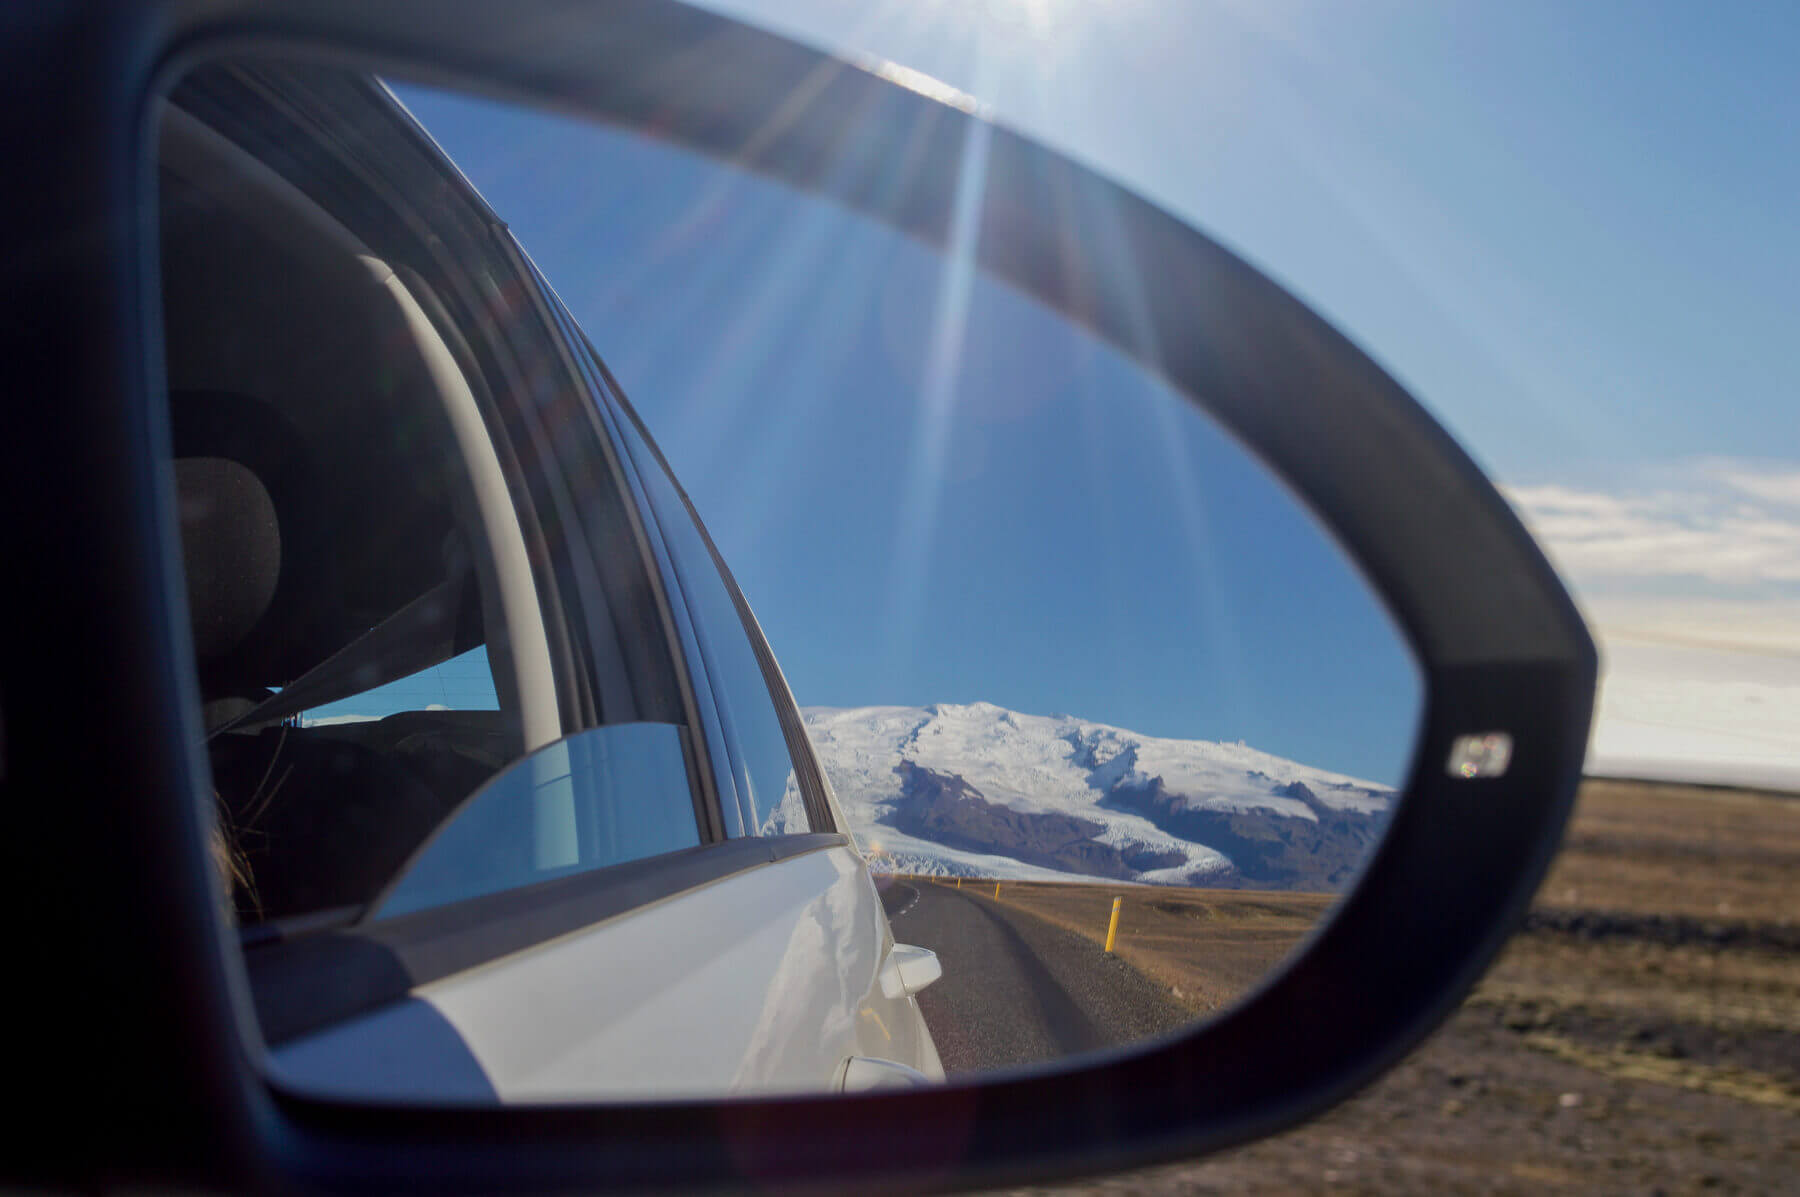 Glacier and Mountains in the mirror of a car